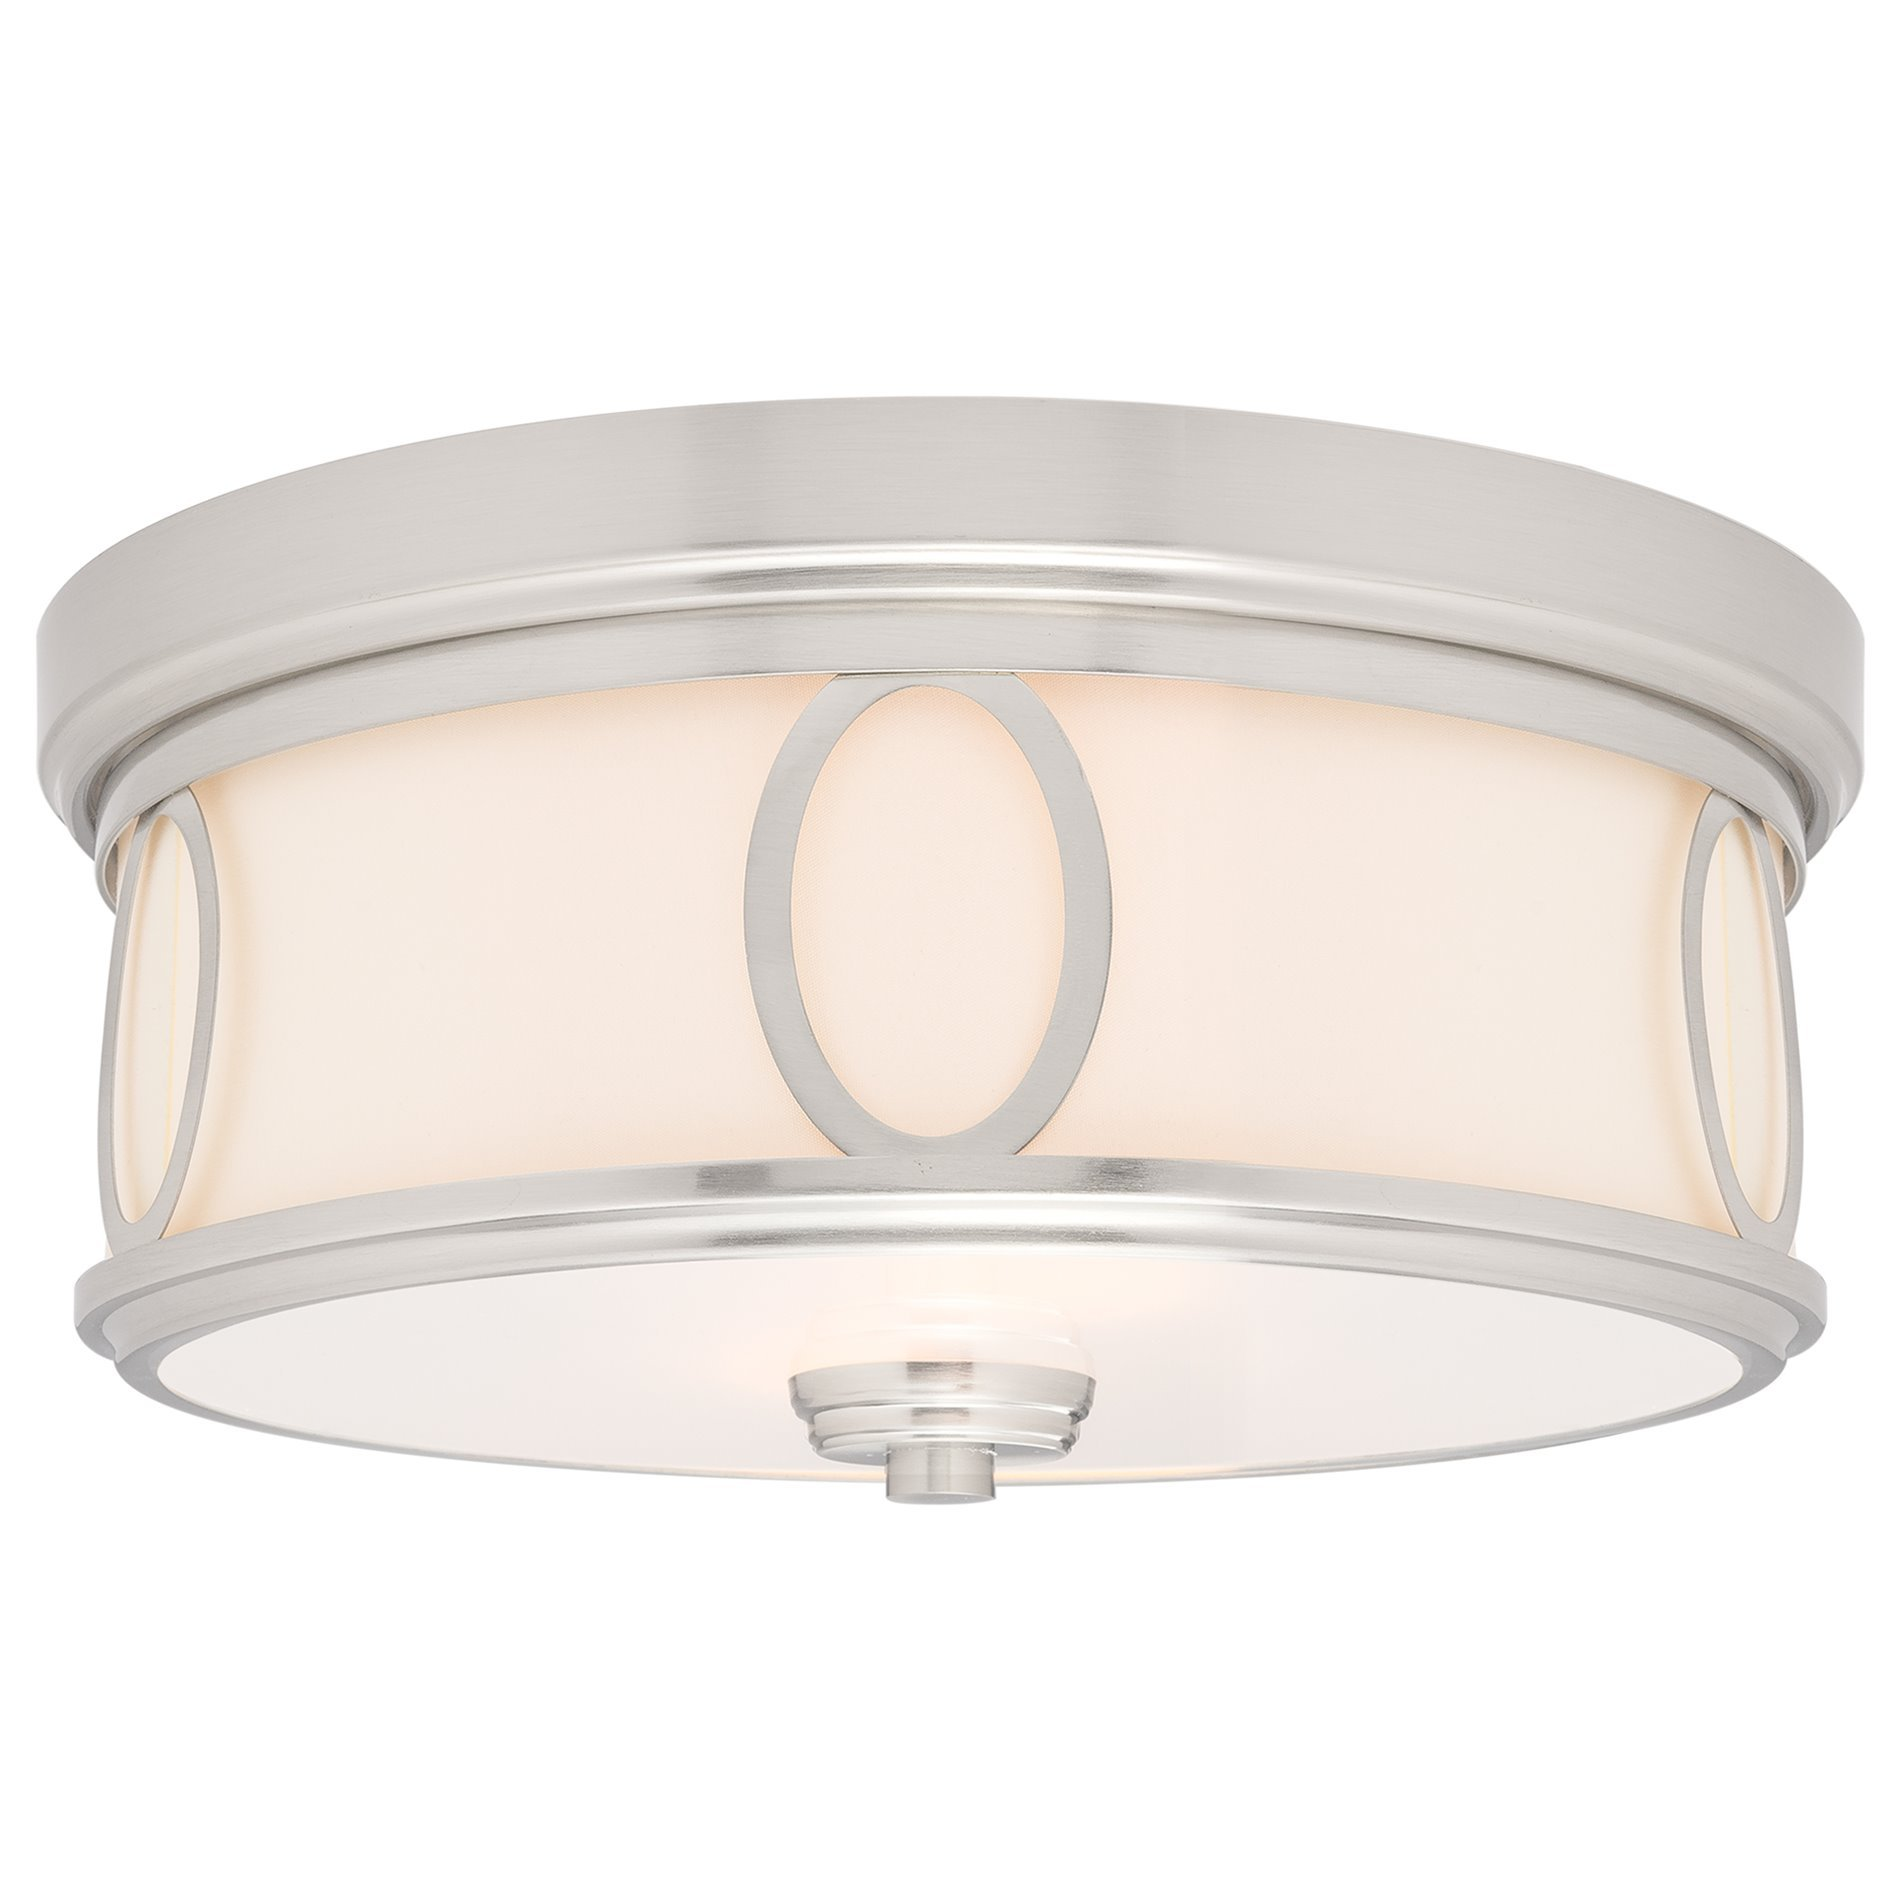 Kira Home Simone 13.5'' Round 2-Light Flush Mount Ceiling Light with Glass Diffuser, Brushed Nickel Finish